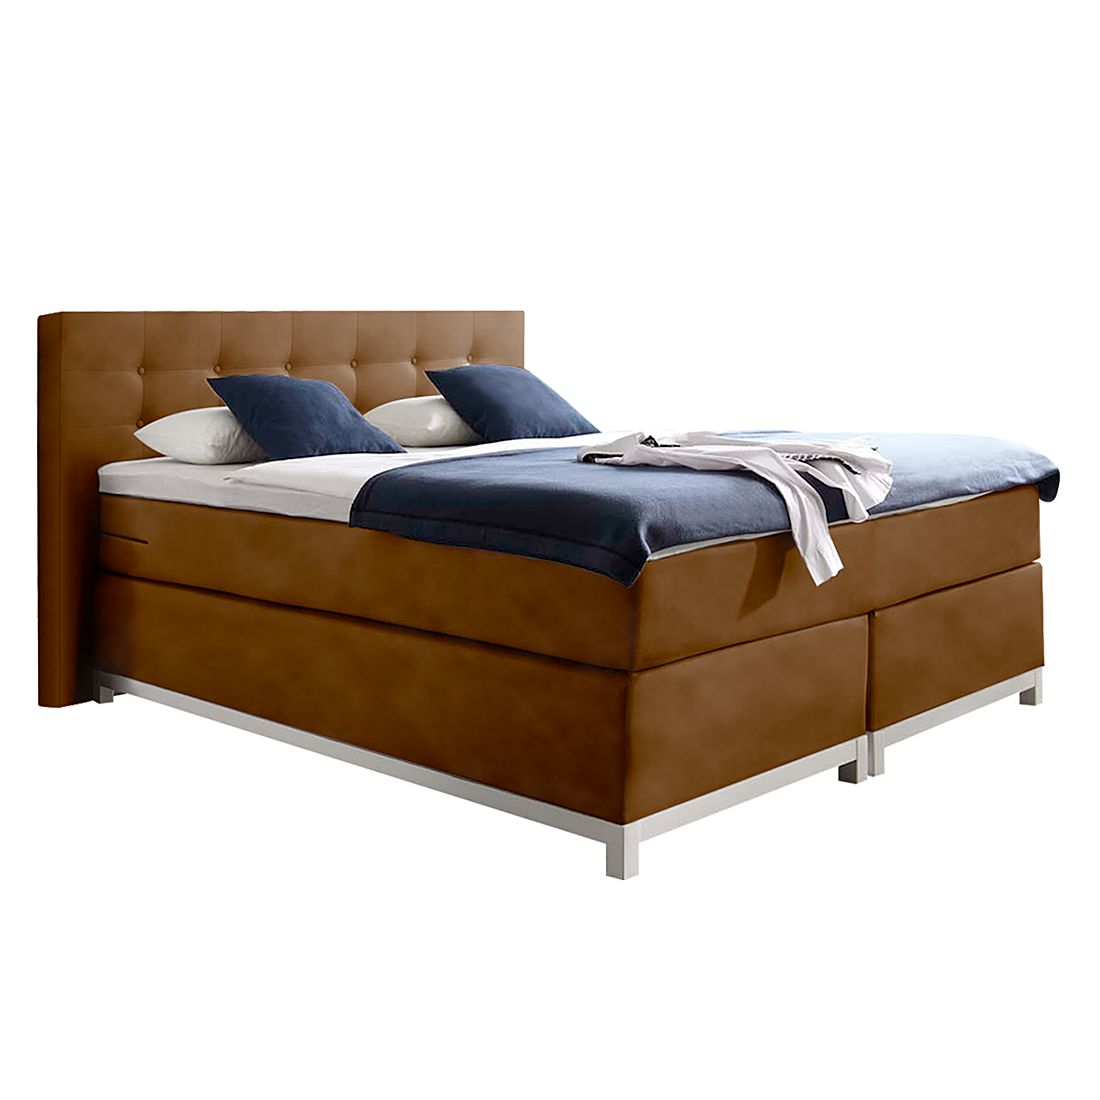 boxspringbett male kunstleder 100 x 200cm h3 ab 80 kg vintage cognac nova dream. Black Bedroom Furniture Sets. Home Design Ideas